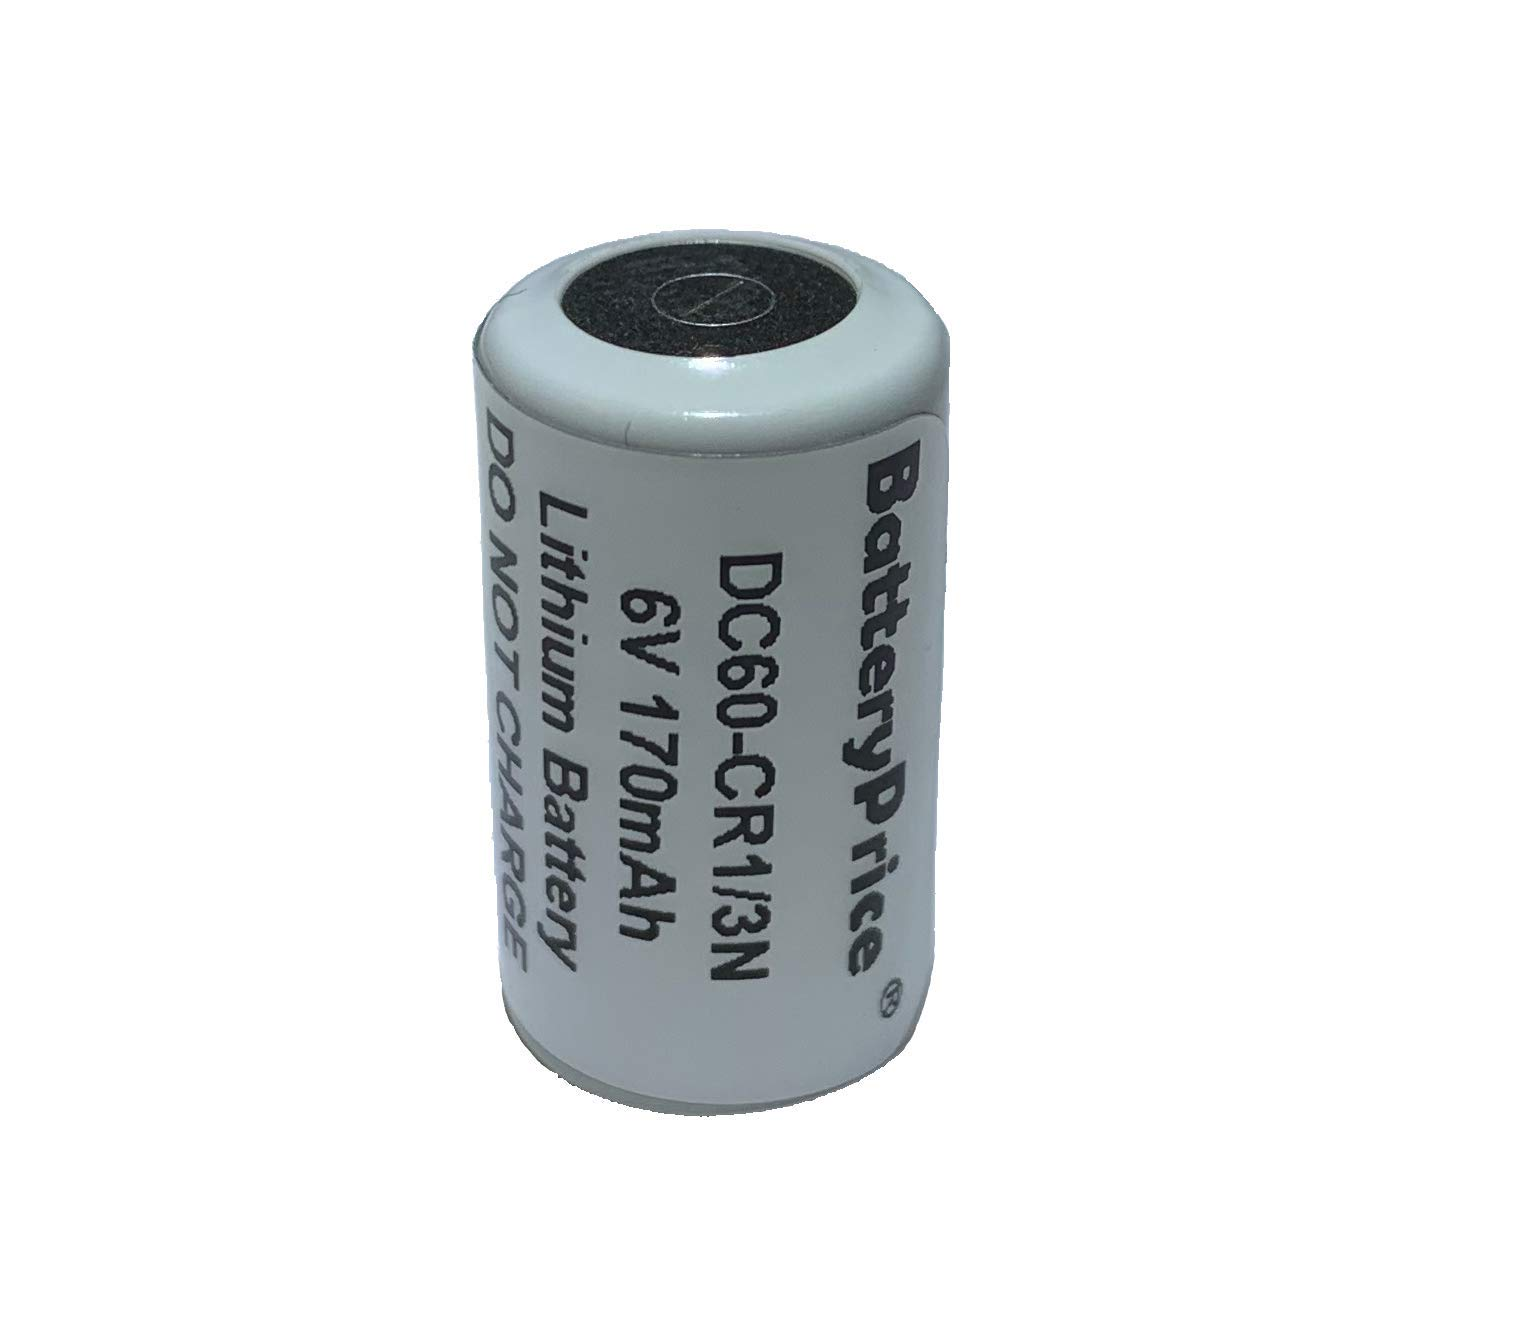 6v Battery for Pet Stop Collars by BatteryPrice by BatteryPrice